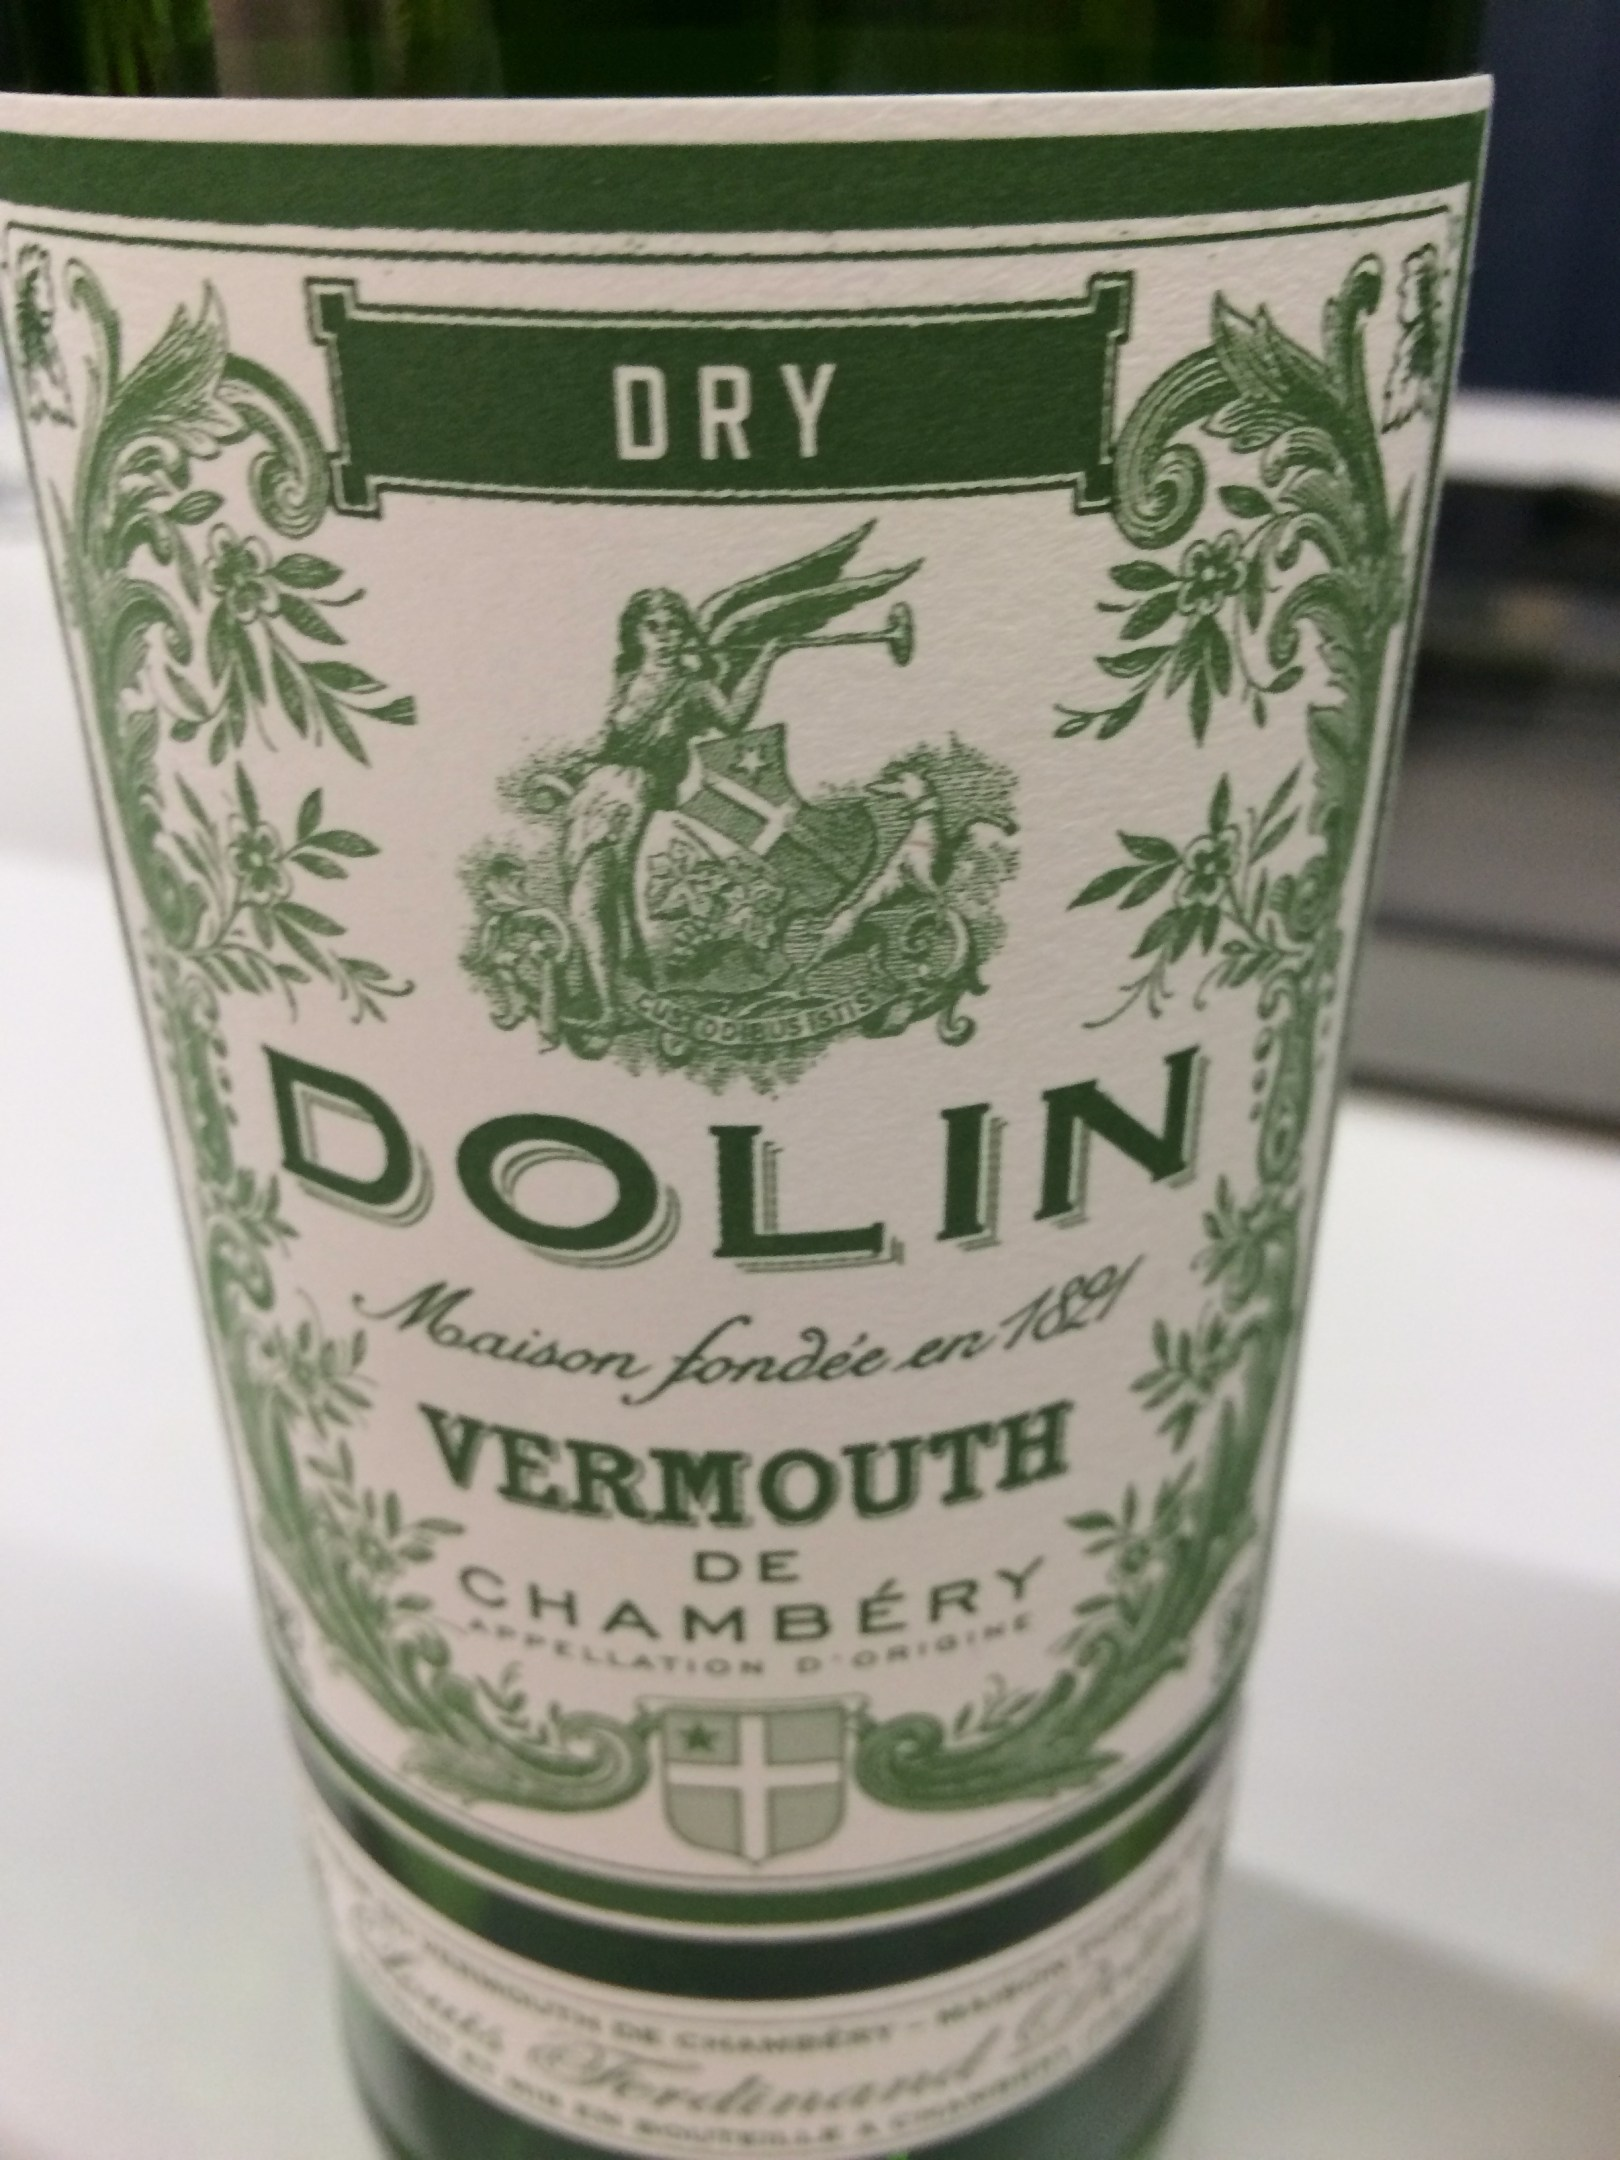 Dolin vermouth from Chambery, France